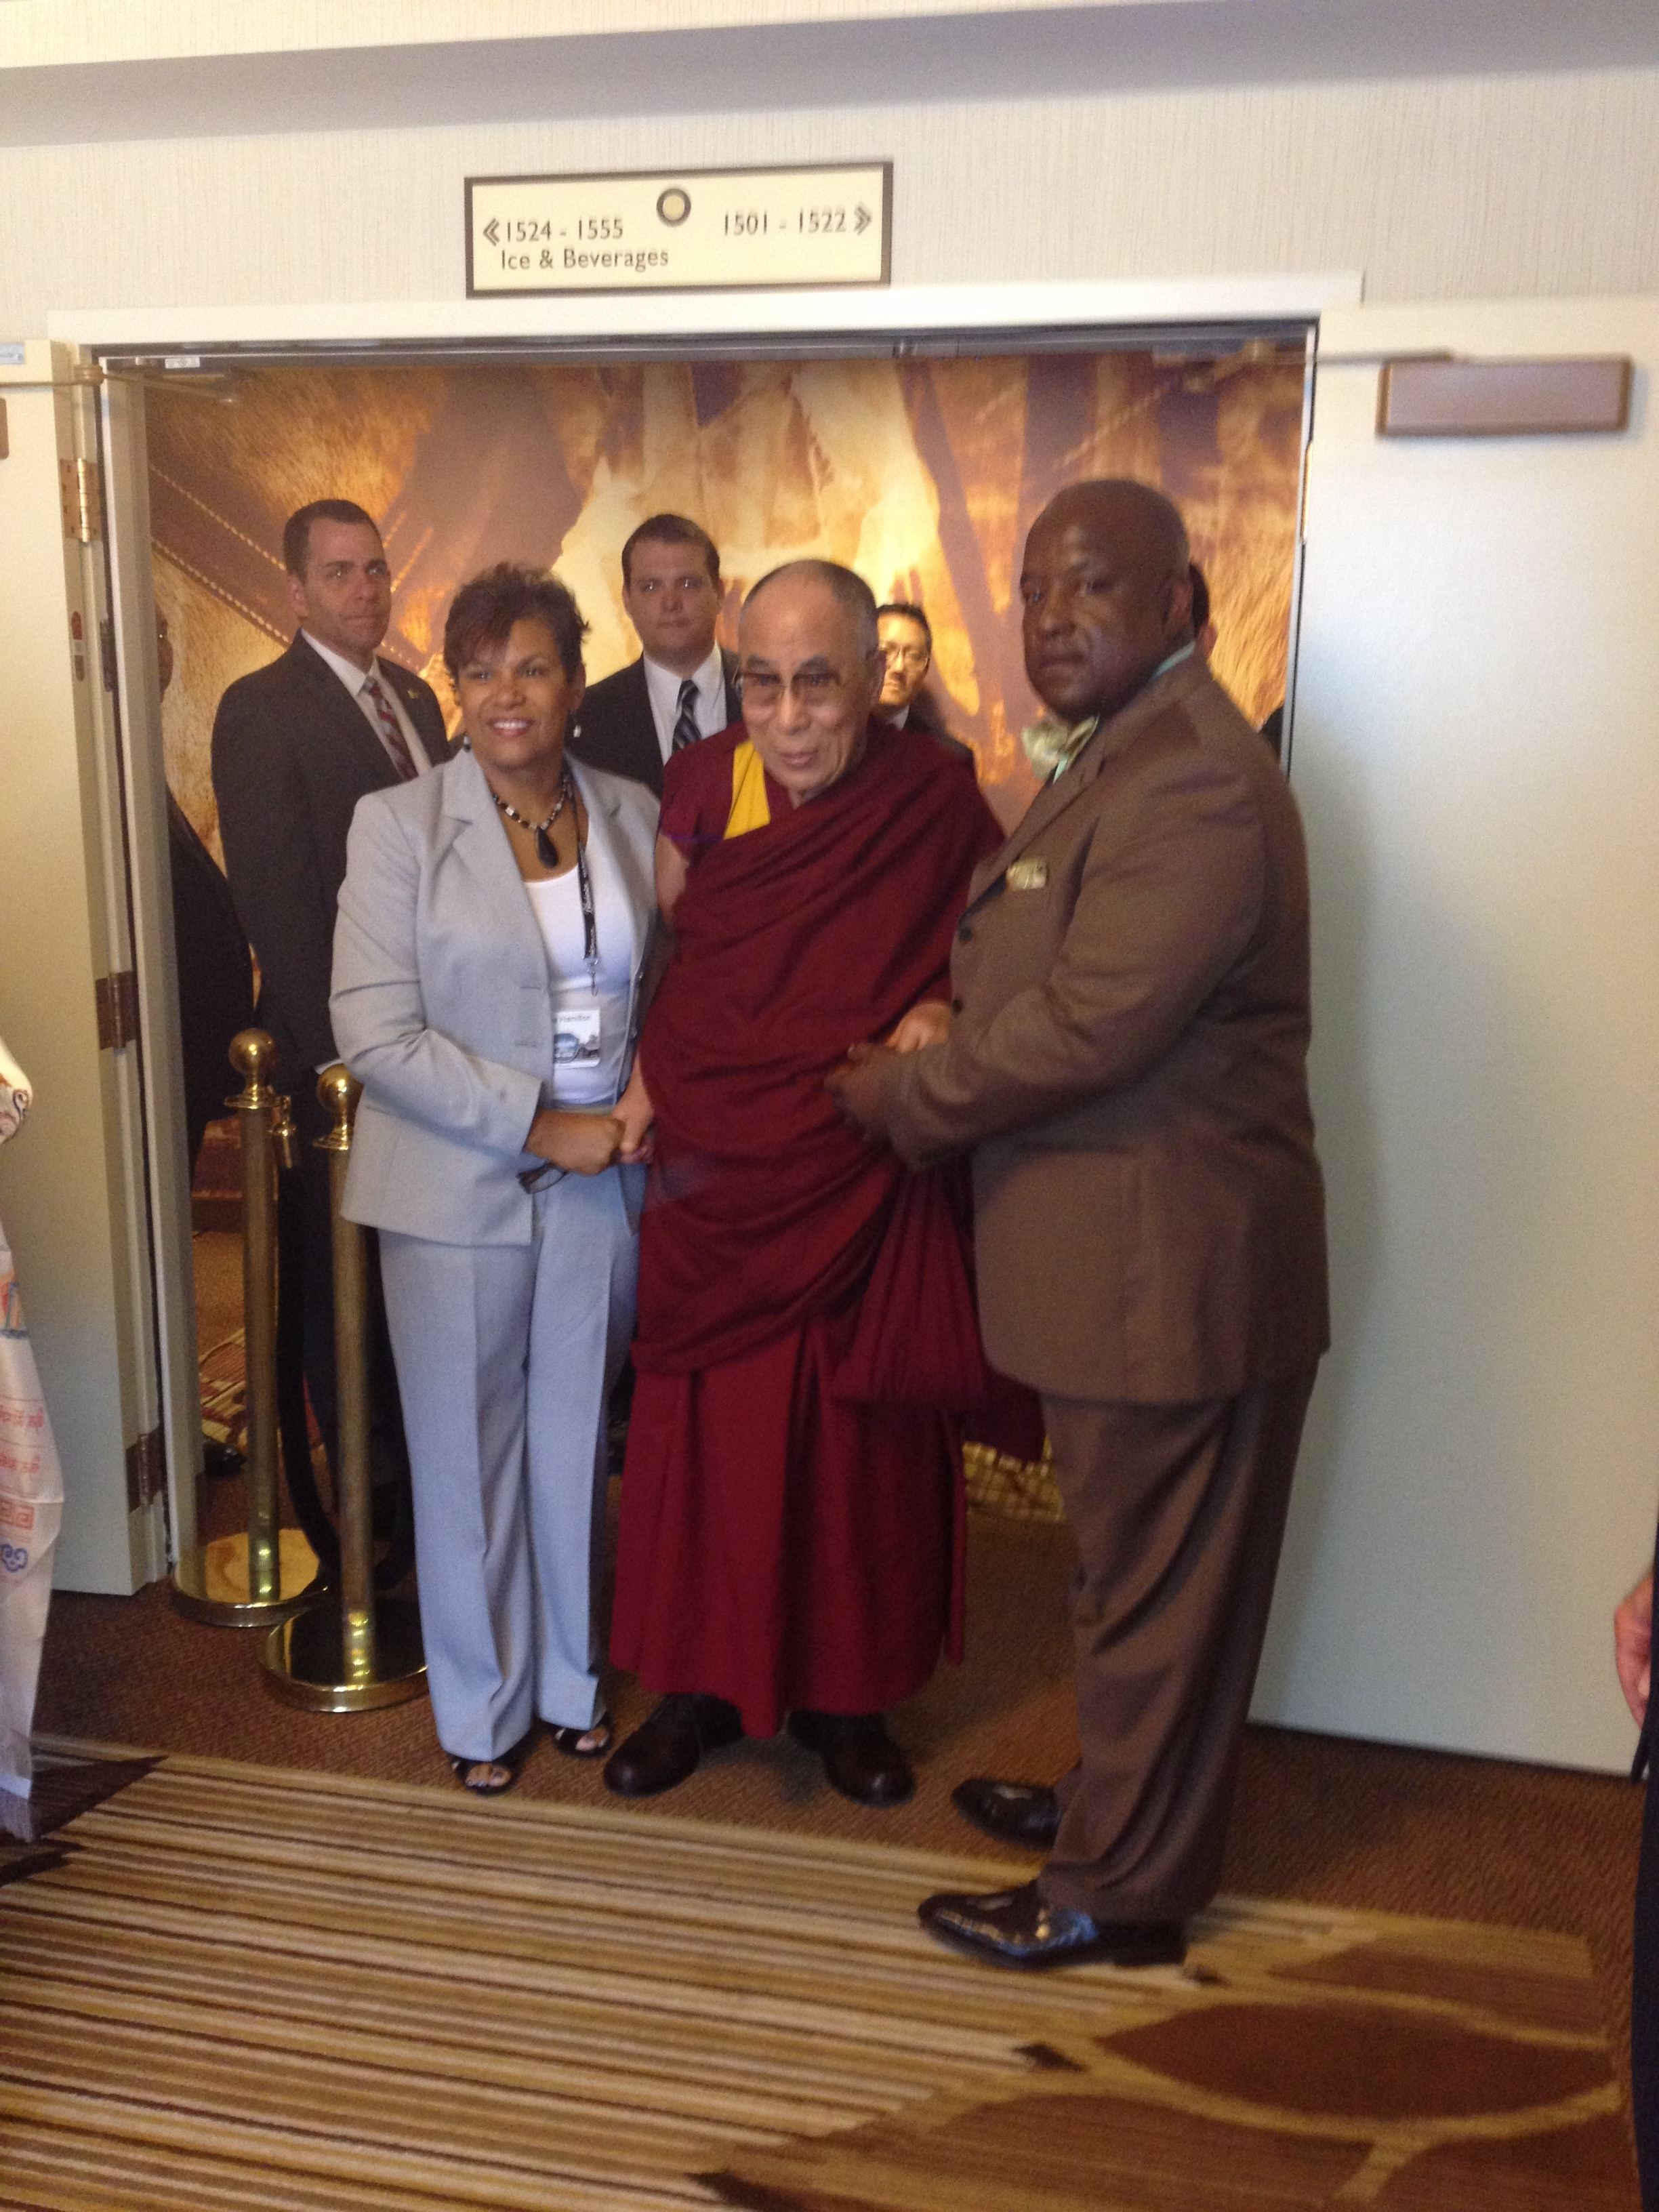 Our client Maize H. & Dalai Lama